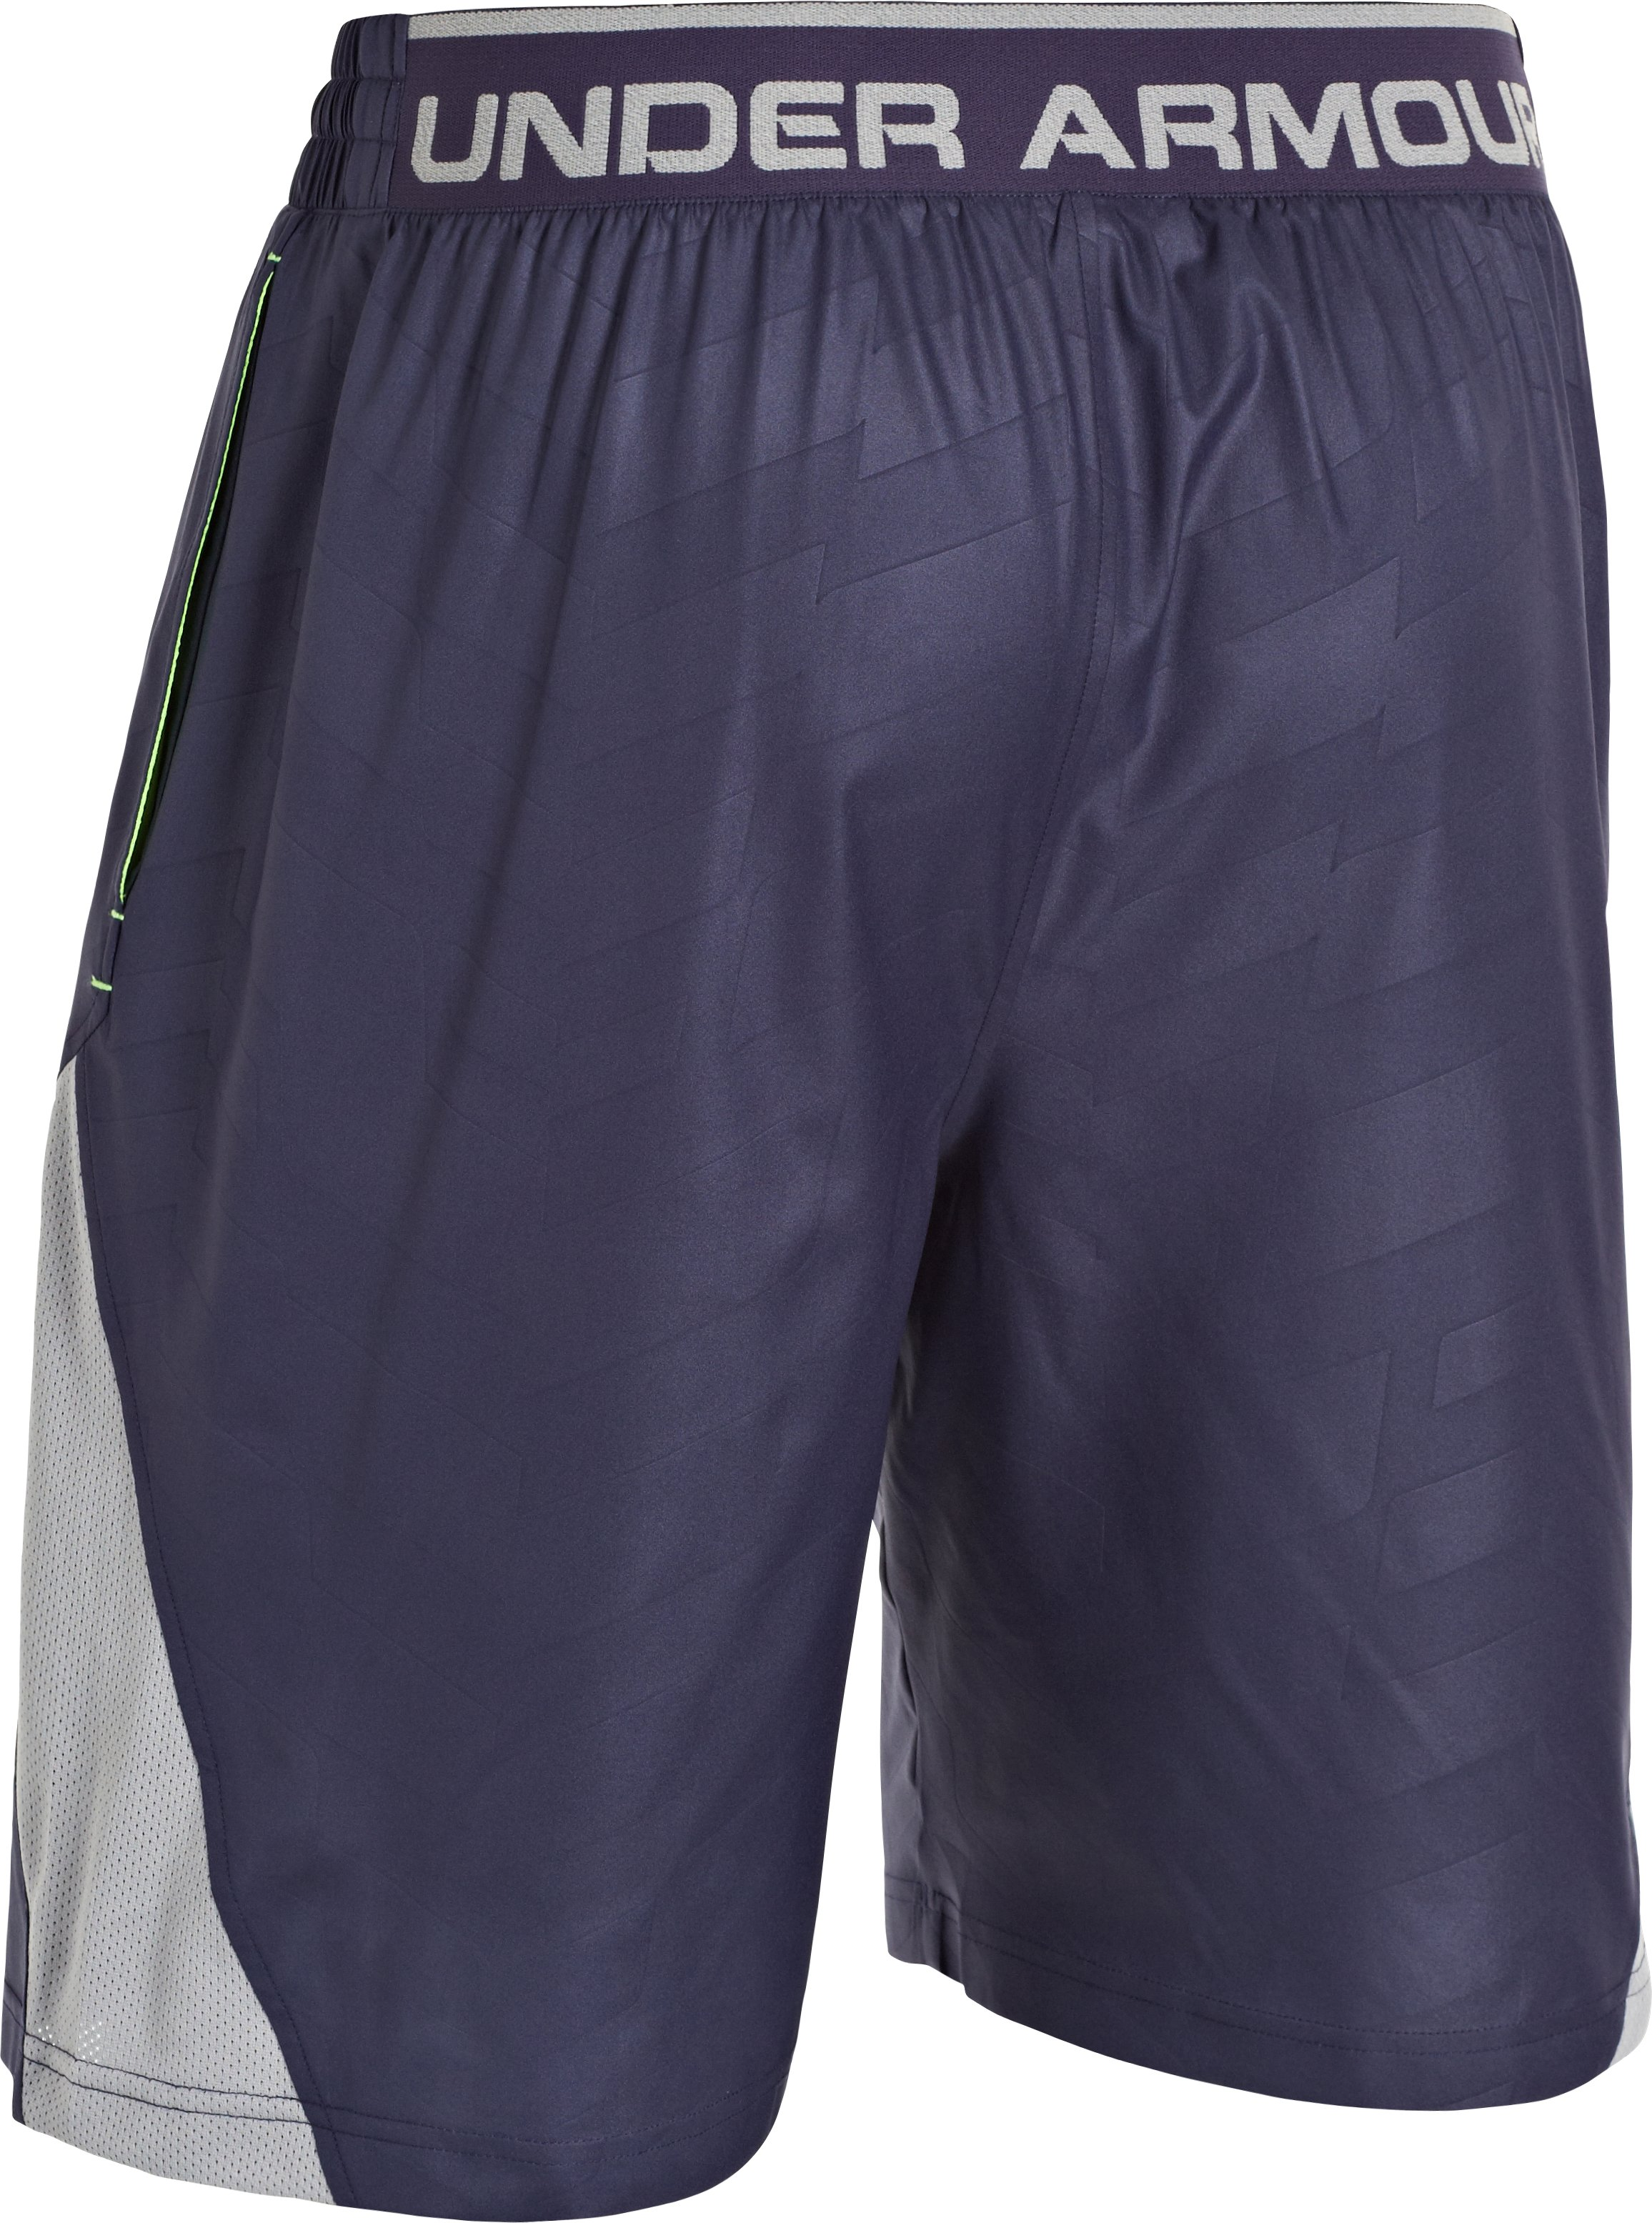 Men's UA CTG Baseball Training Shorts, Midnight Navy